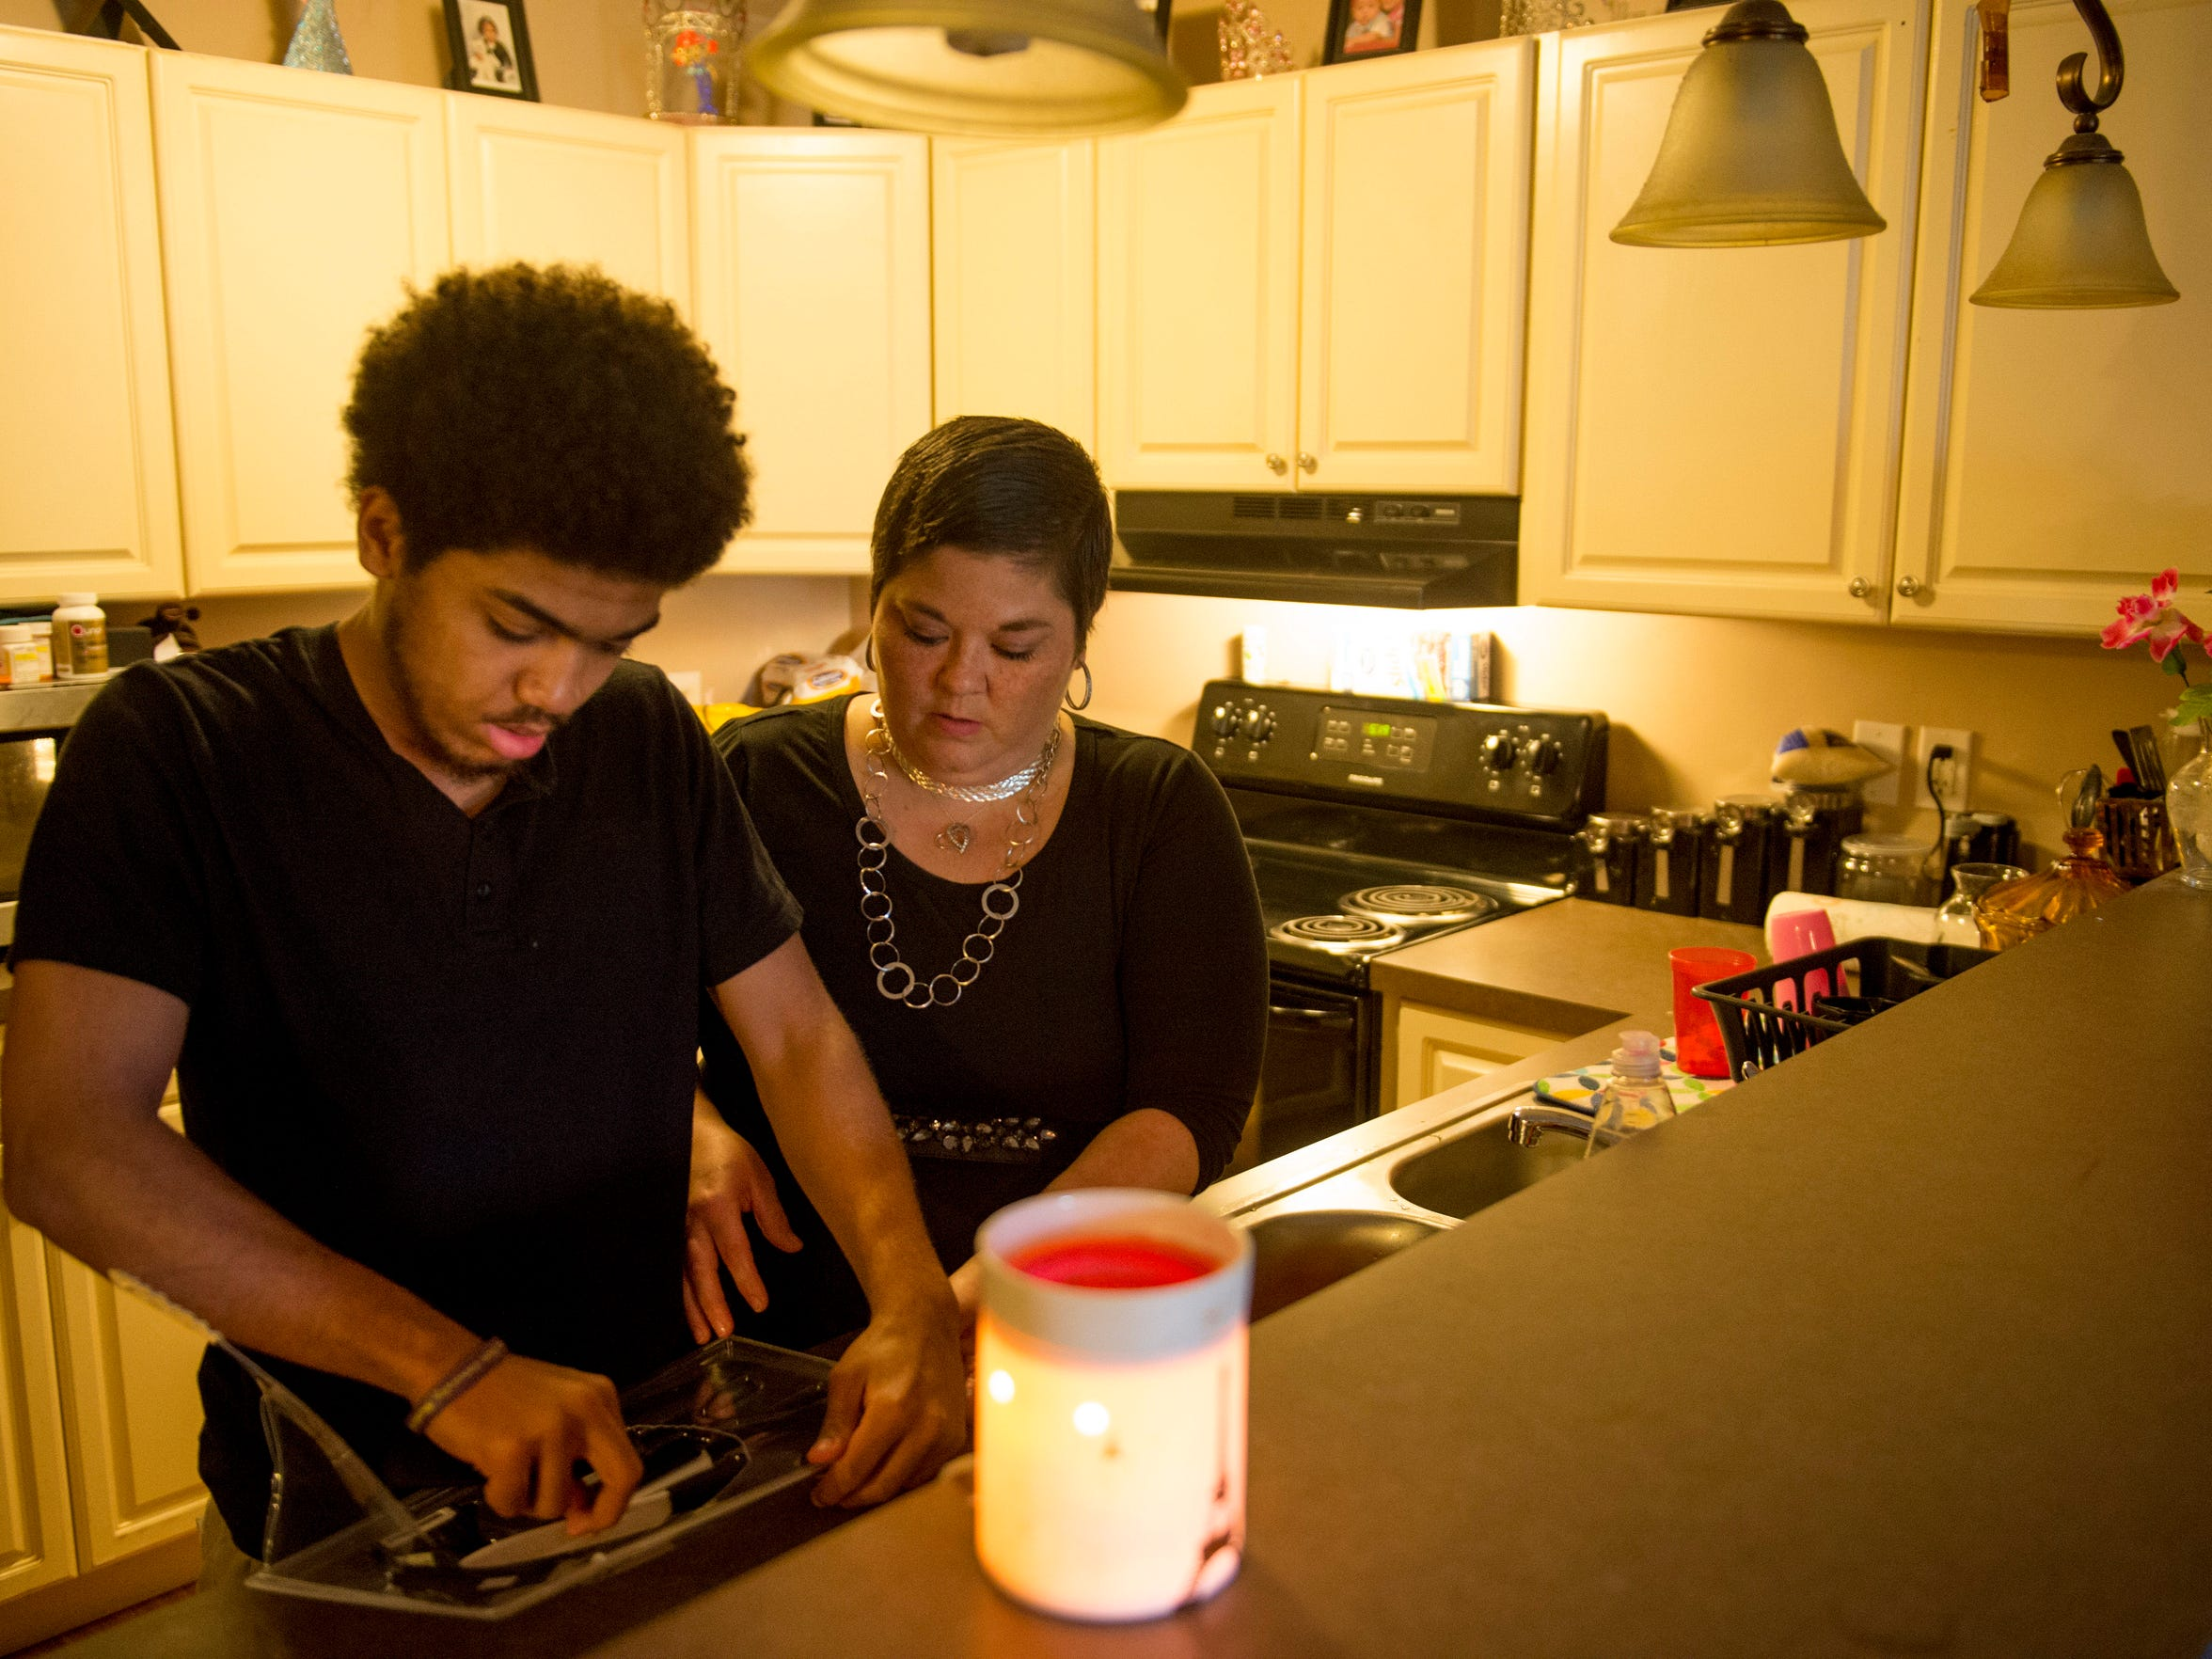 Heather Ota and her son, Brandon, 16, prepare for a night of steak fajitas in their Princeton, Ind., apartment Thursday evening. Since being diagnosed with her illness, Heather Ota's children have all become more responsible for themselves and each other.